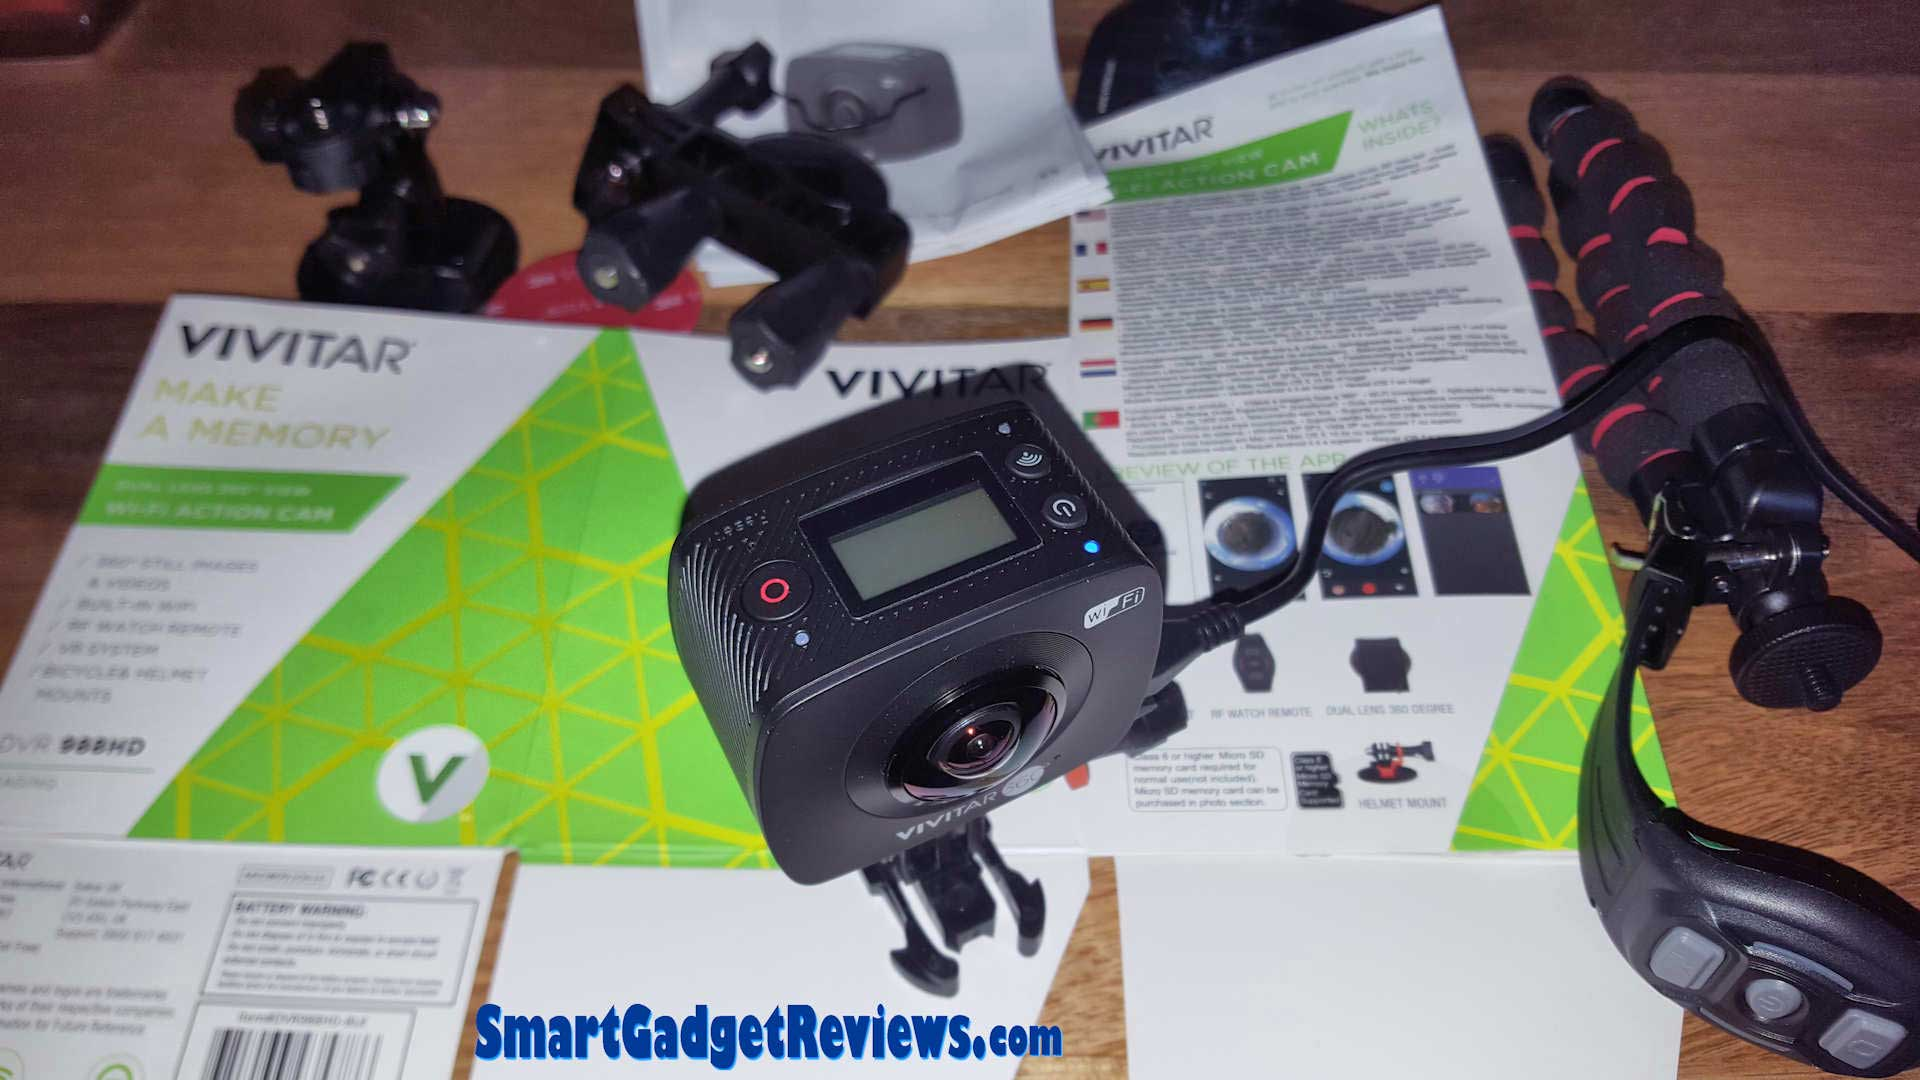 VIVITAR DVR 988HD 360 4K Action Cam Review & Rating Video Tests